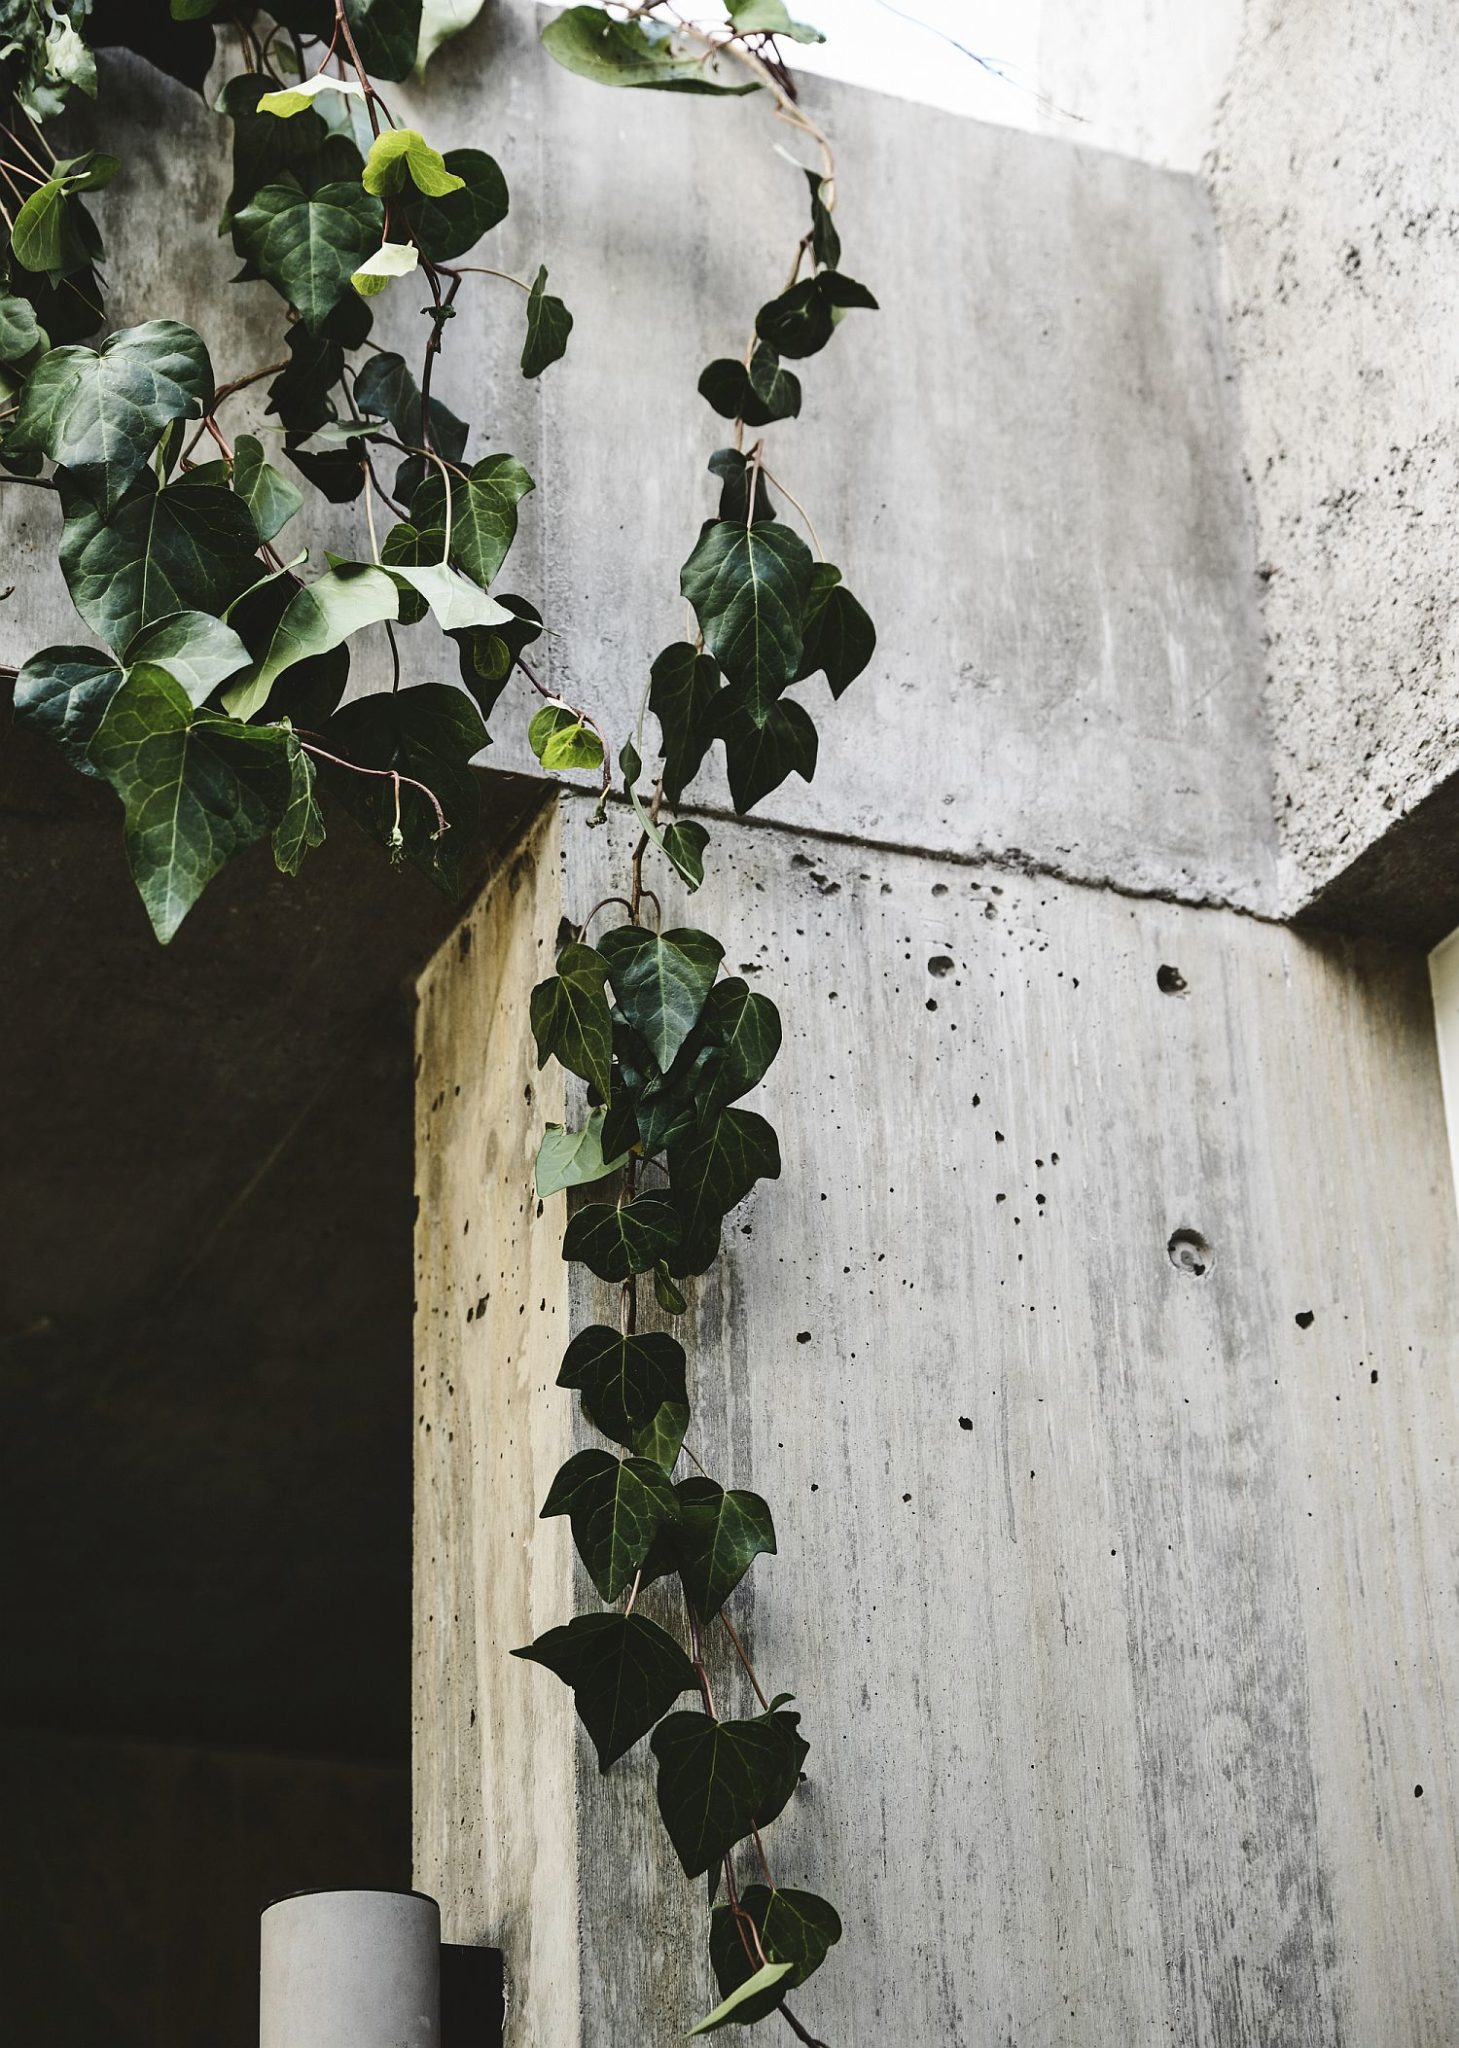 Hanging-plants-next-to-concrete-walls-create-an-Arcadian-setting-of-sorts